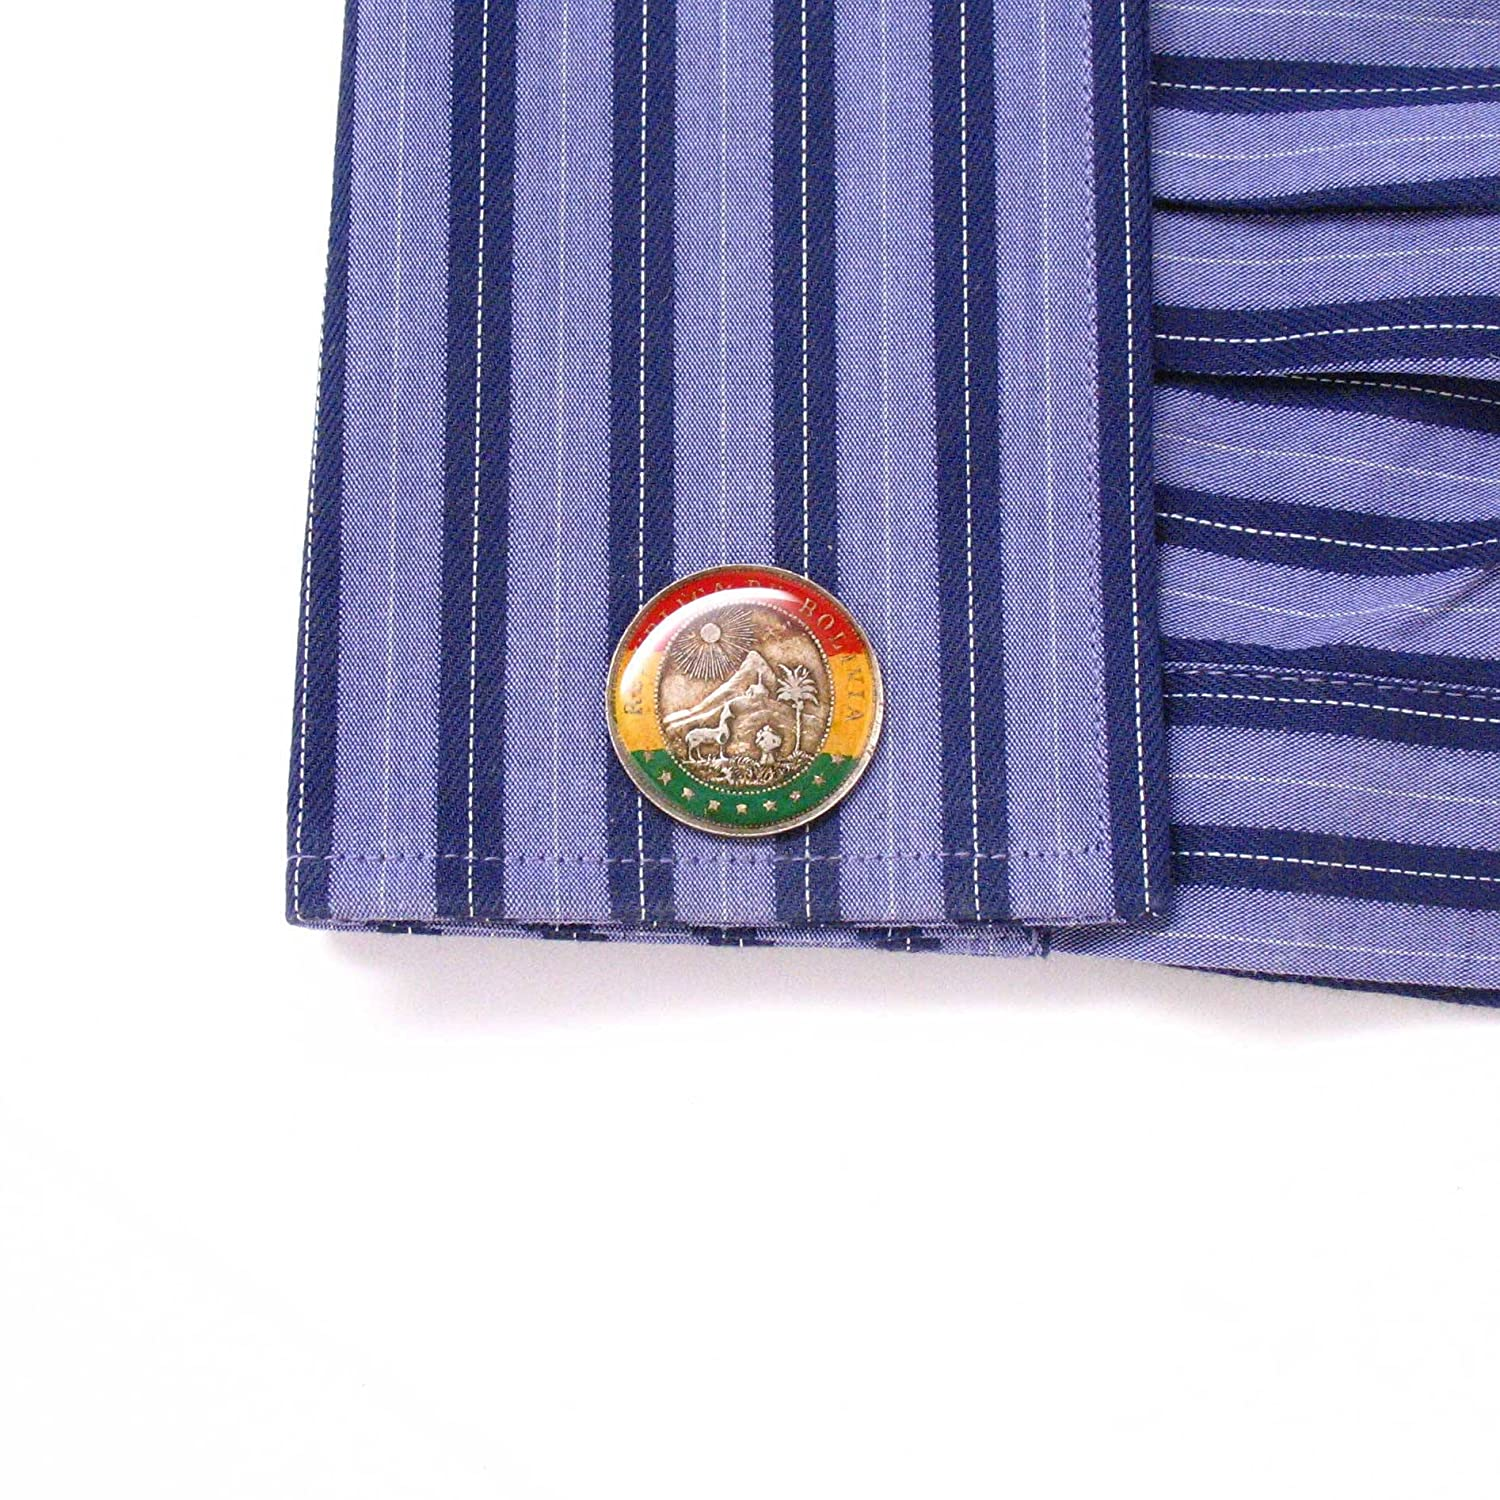 Amazon.com: The Traveling Penny Bolivia Coin Cufflinks Cuff Links Flag Mancuernas Mancuernillas Joya Bandera Hand Made Rare Unique Cochabamba Sucre La Paz ...